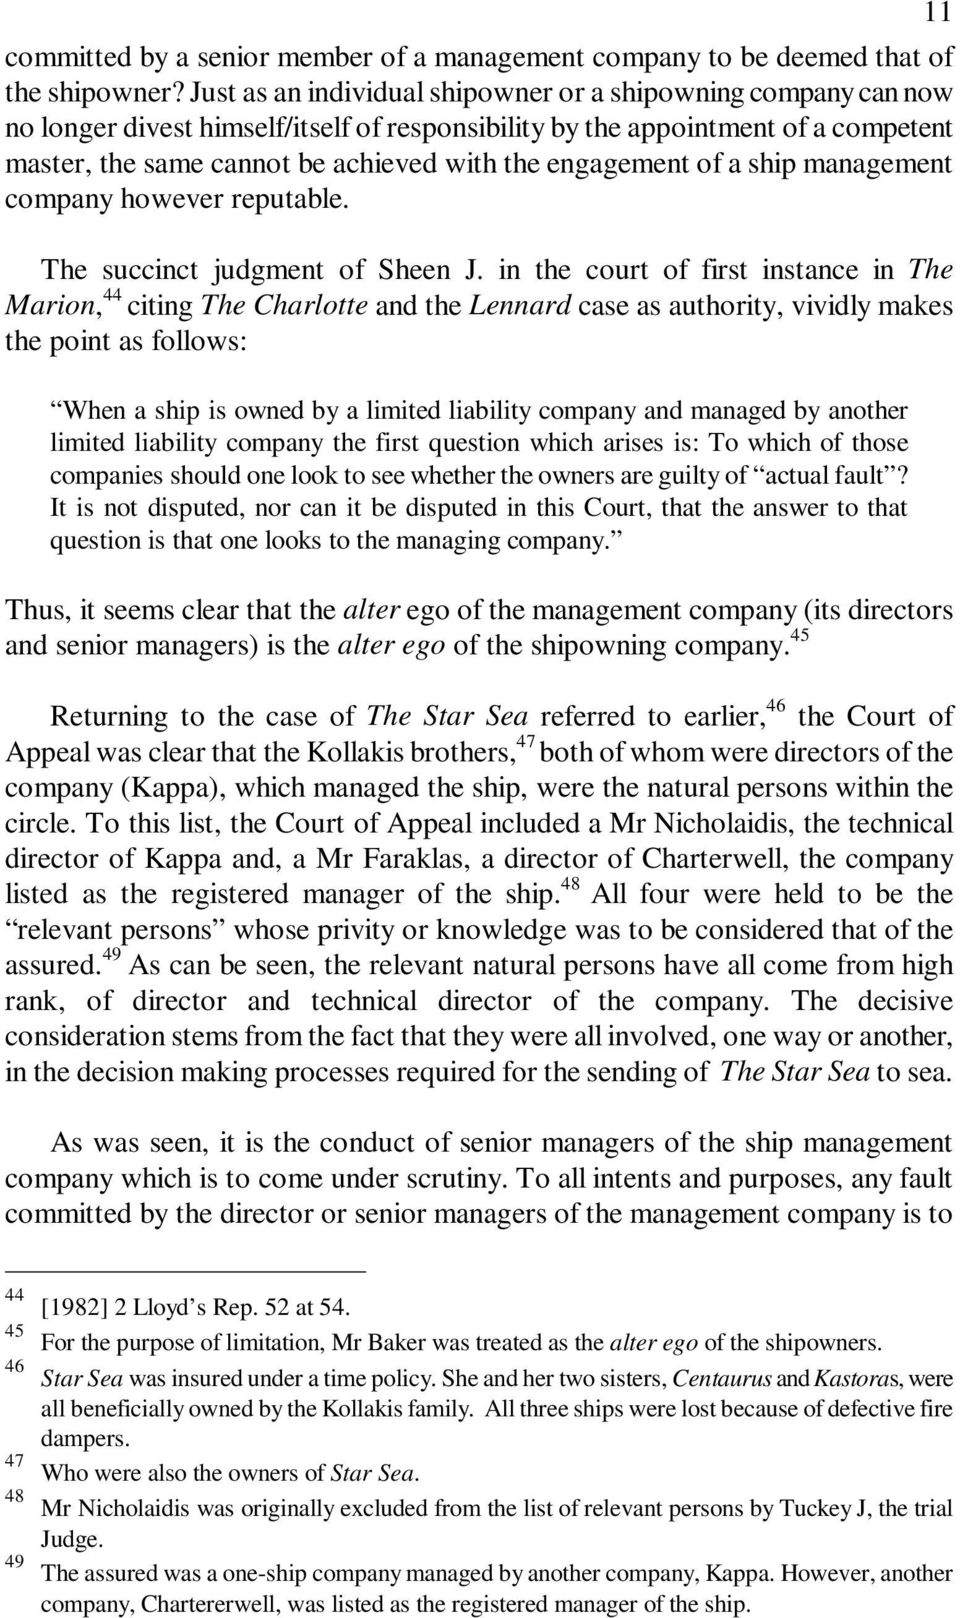 engagement of a ship management company however reputable. The succinct judgment of Sheen J.